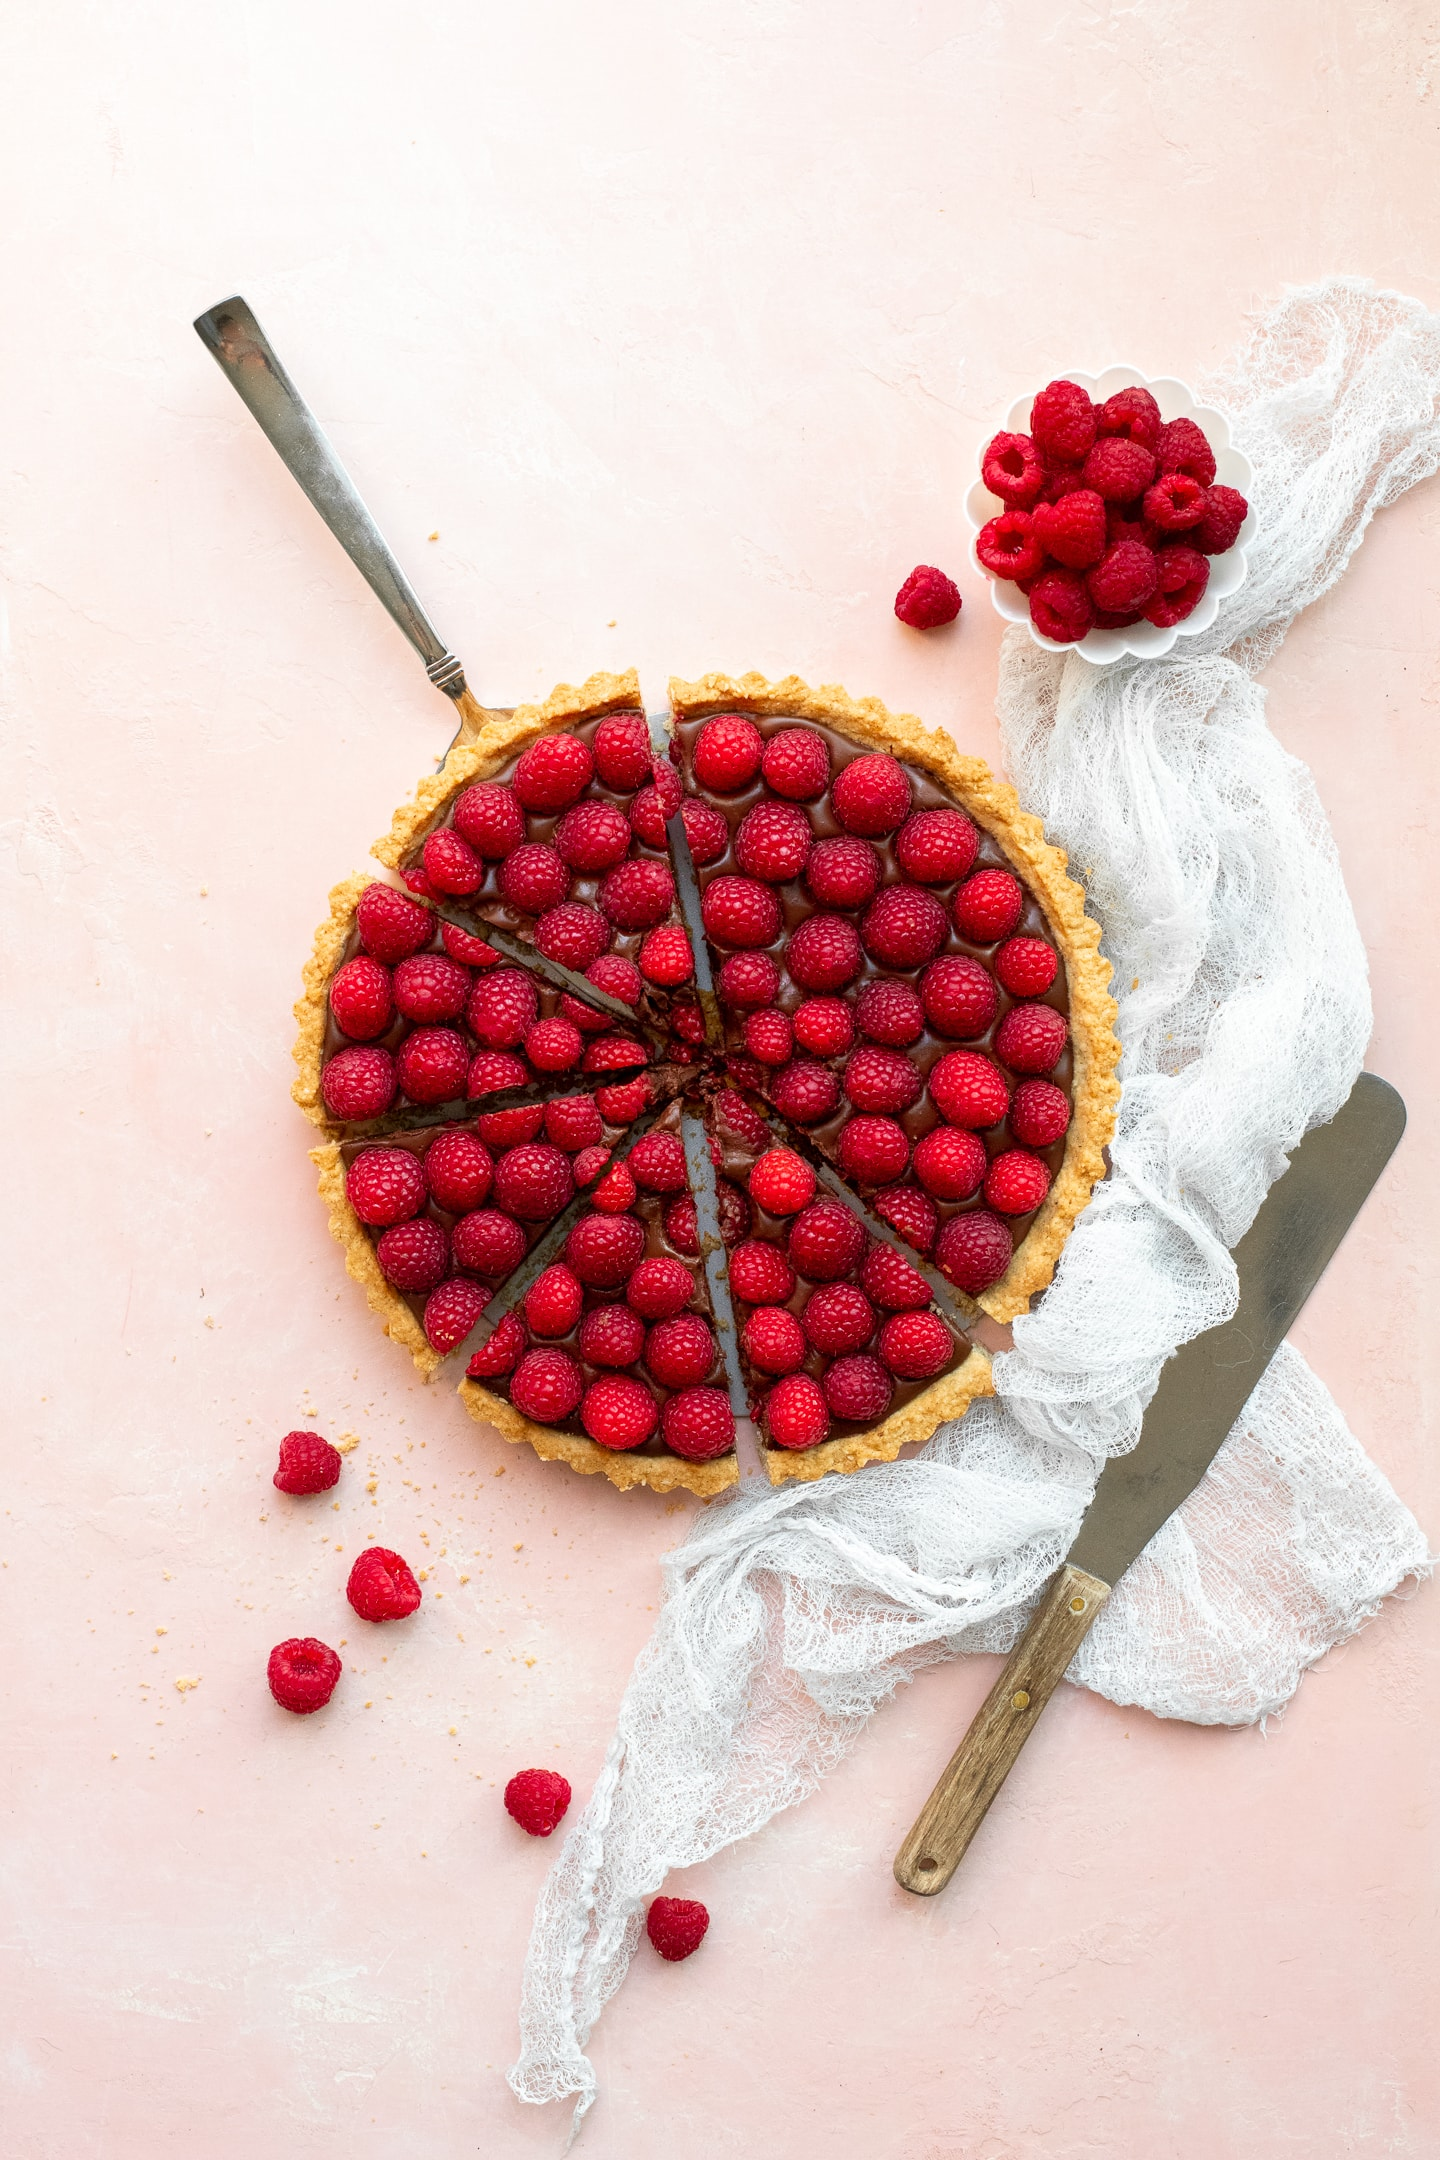 Overhead view of a Raspberry Chocolate Tart, sliced and ready to serve, surrounded by extra raspberries, a white linen, and a pallet knife.